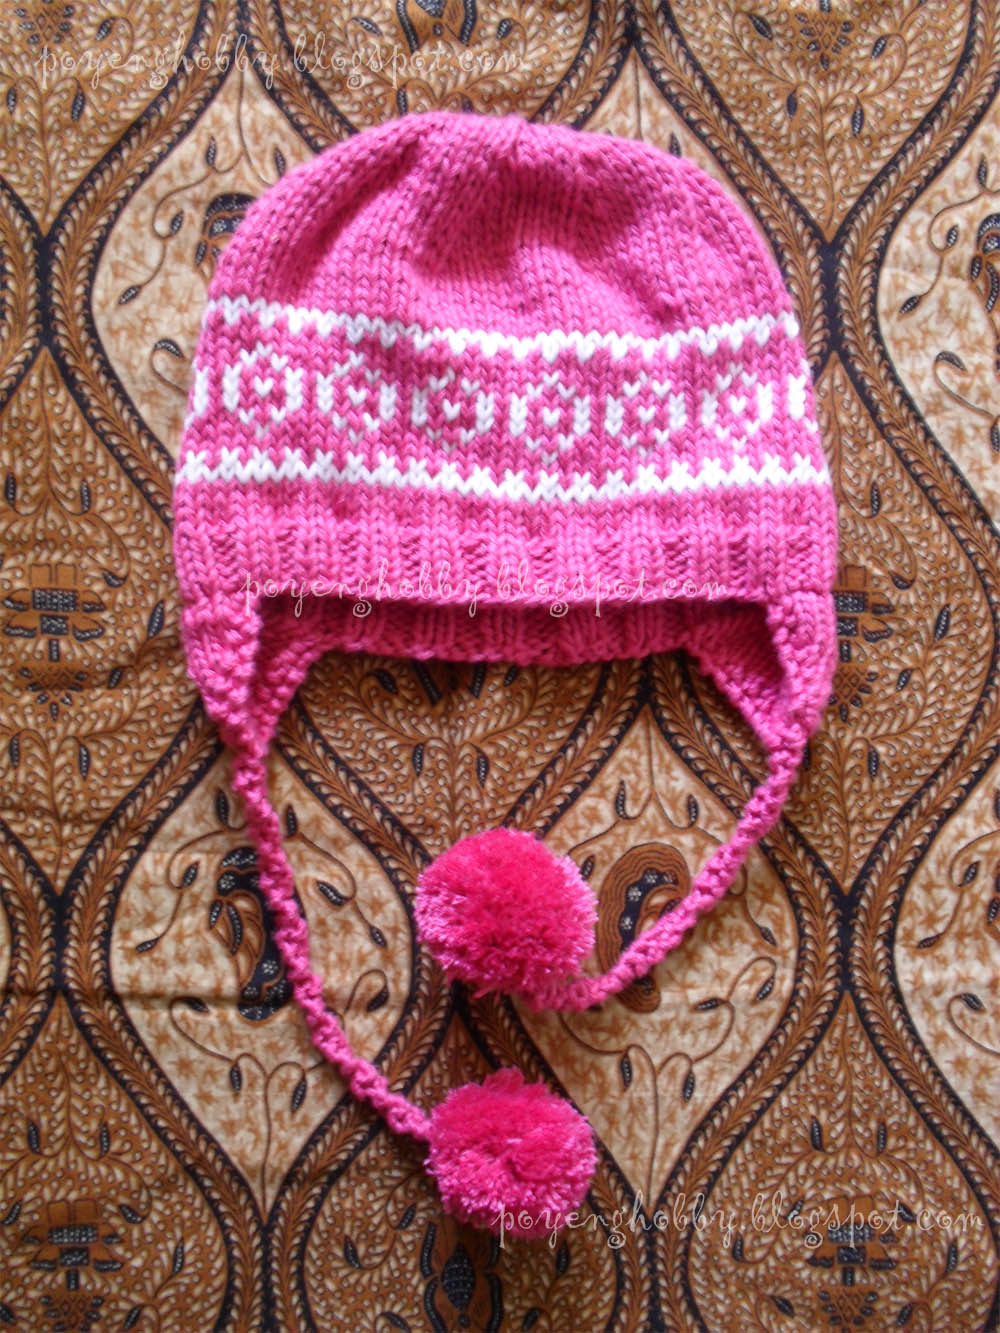 Ajeng Belajar Merajut: Knitting with Ajeng: Ear Flap Hat with motive ...